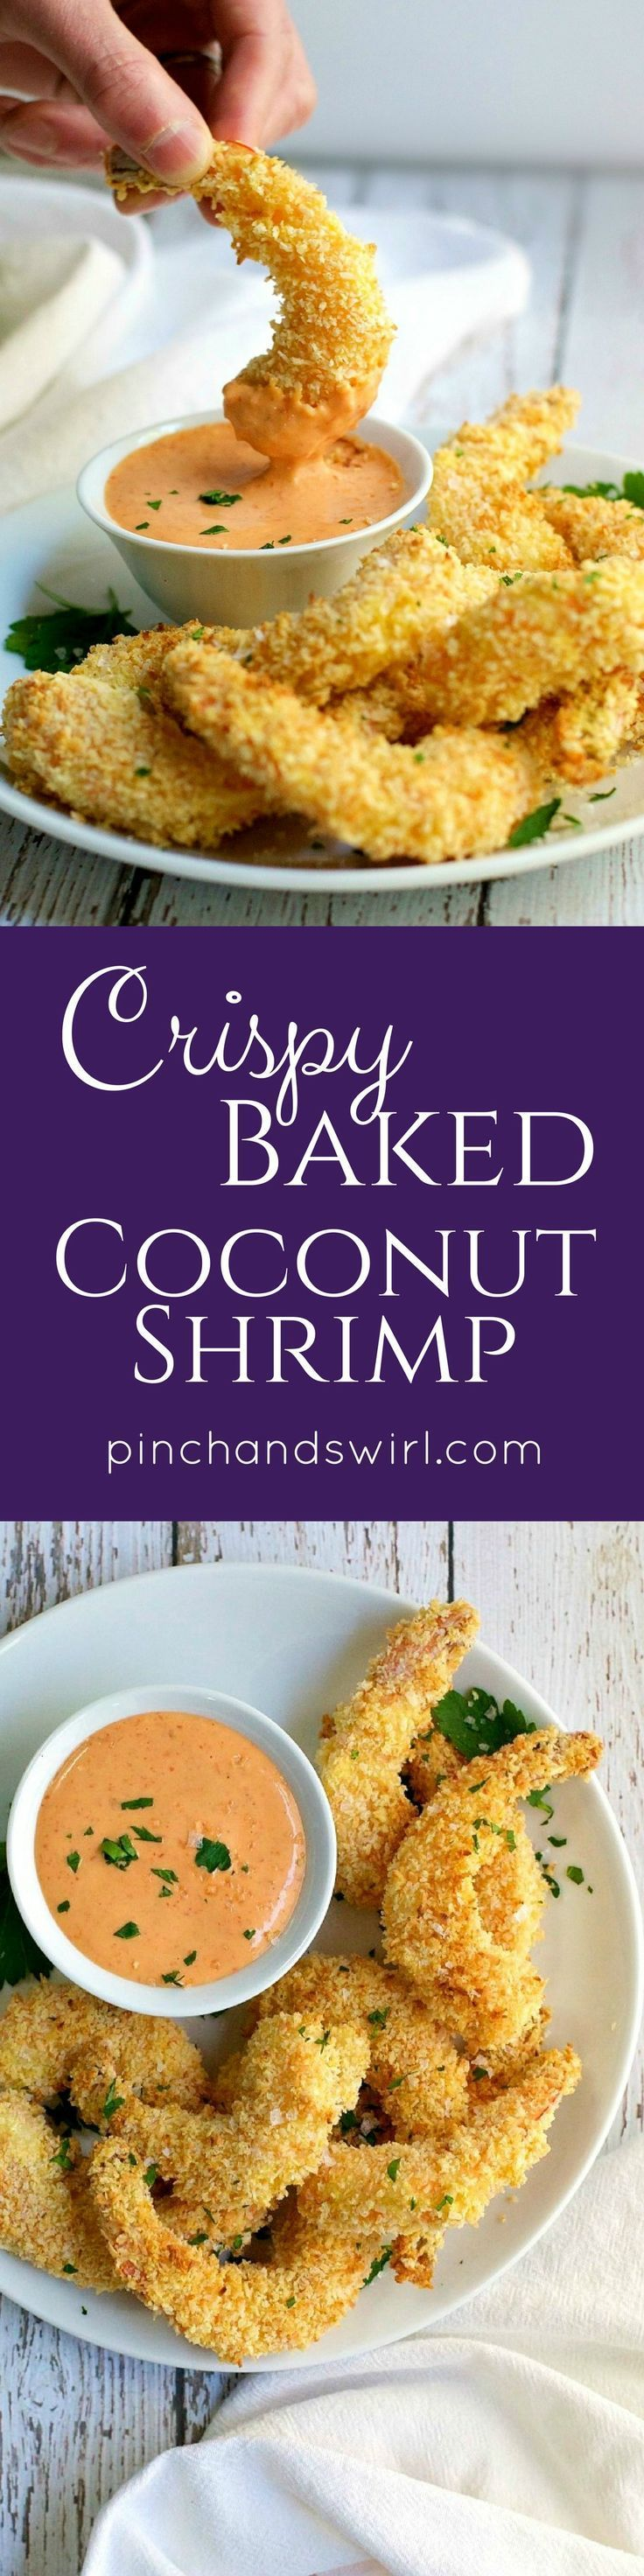 The secret to truly crispy baked coconut shrimp is in the breading. It's all about double toasting - toast the panko breadcrumbs and coconut before you bread the shrimp and let it crisp up again while the shrimp bakes. With this method, the breading adheres perfectly and the shrimp stay truly crispy. It's the best alternative to deep frying that I've found!